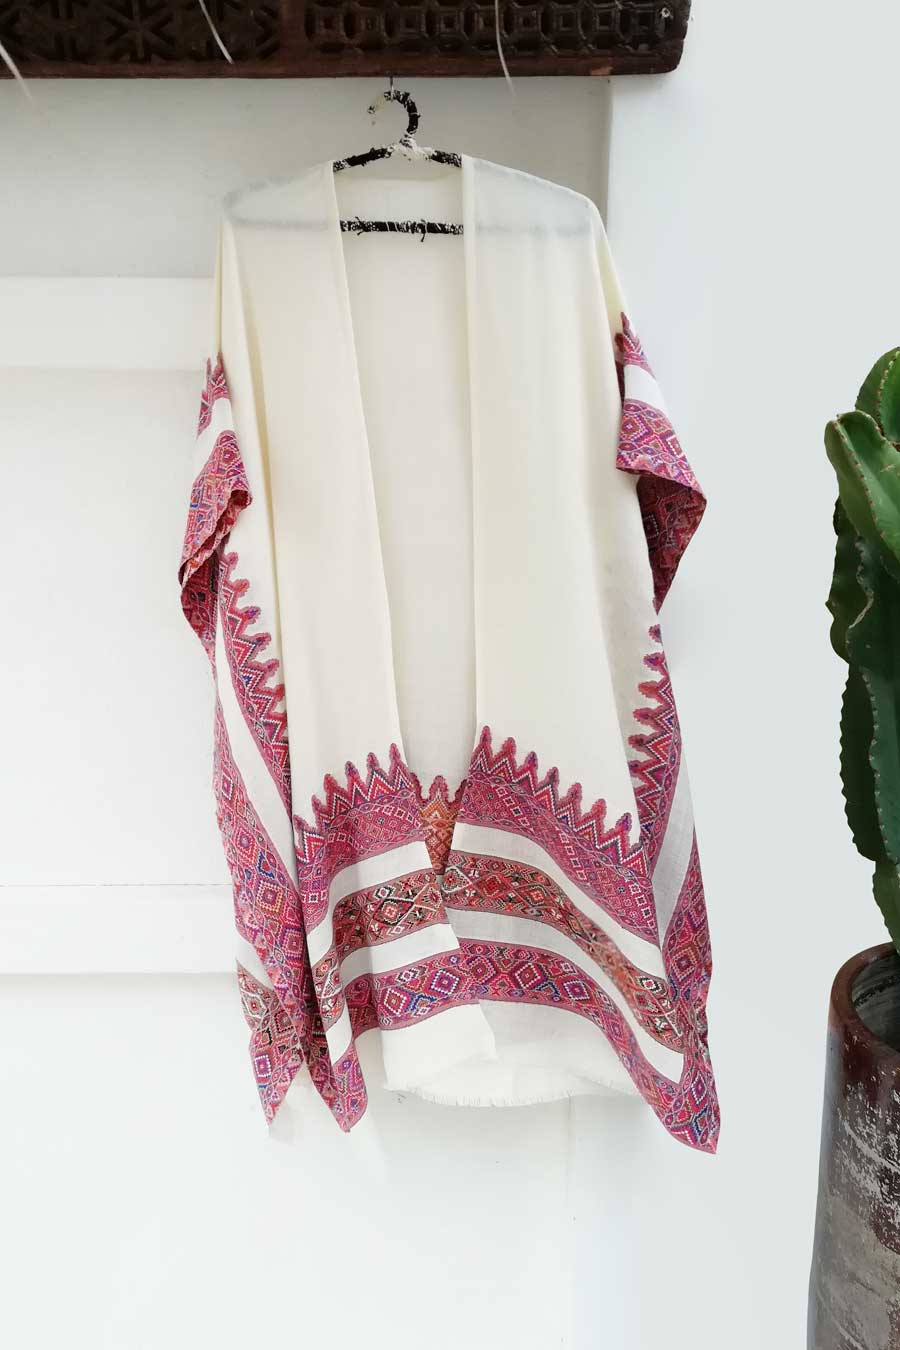 Off-White and Multicolor Embroidery Unisex Poncho